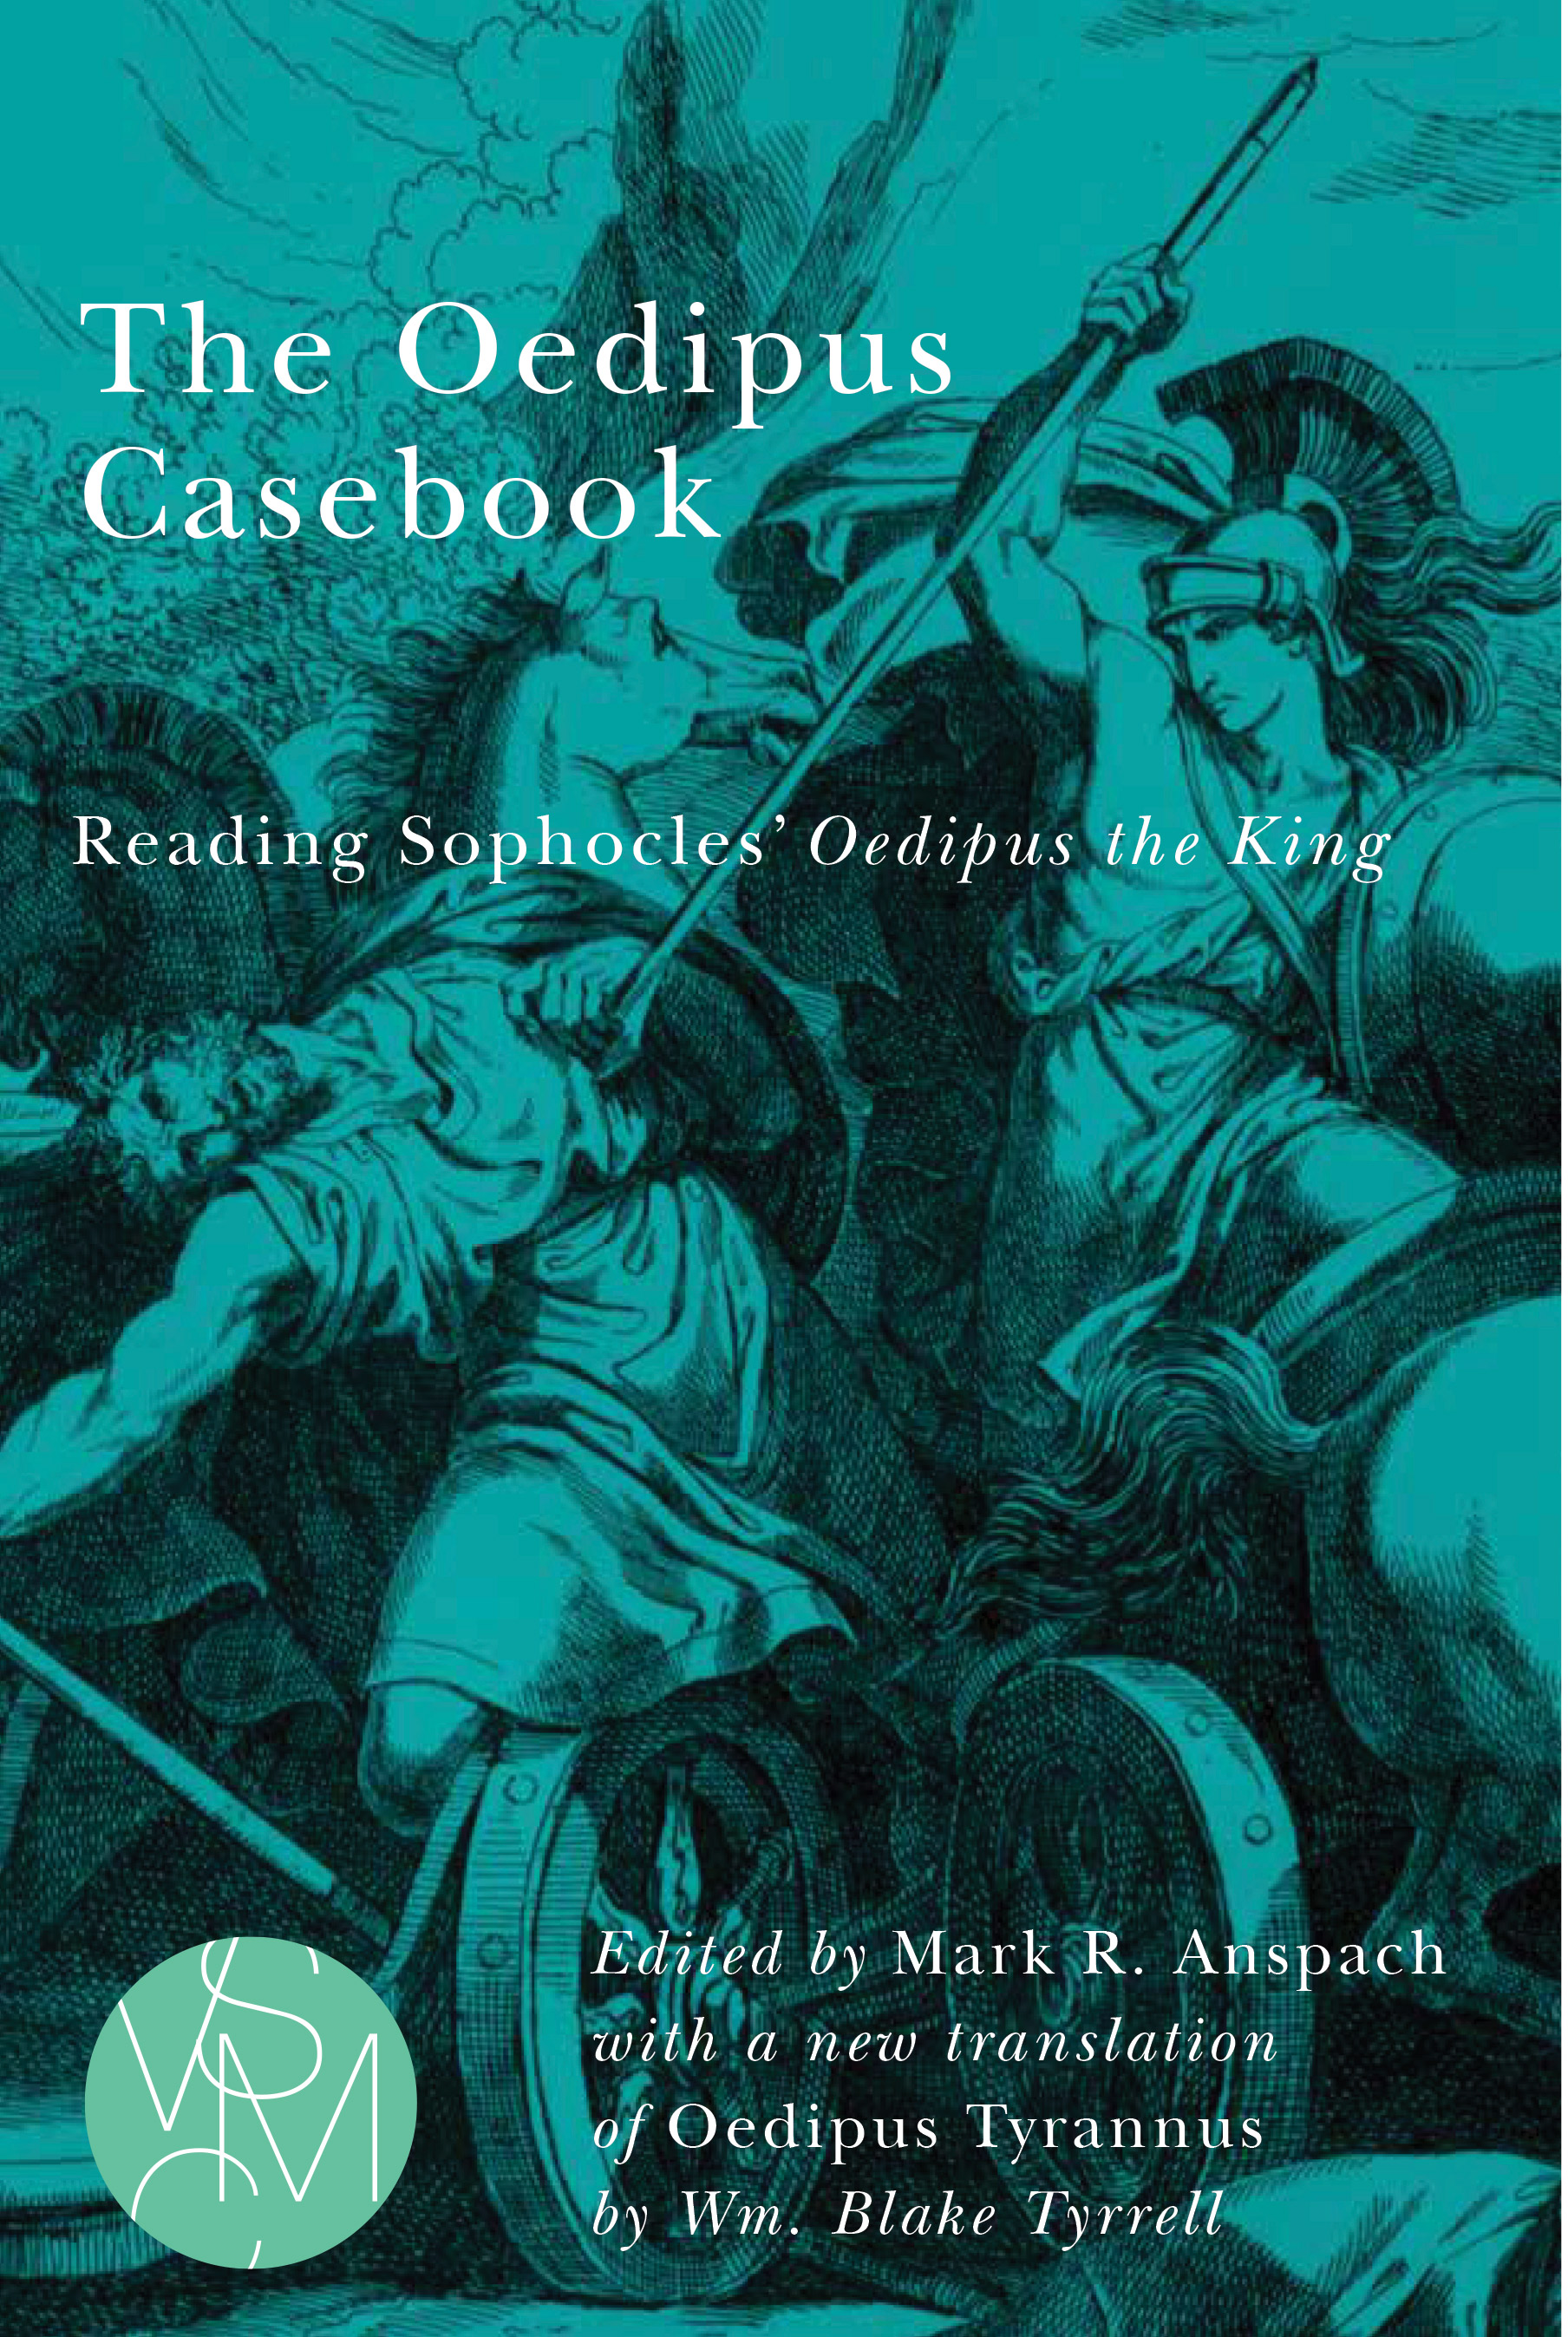 The Oedipus Casebook cover